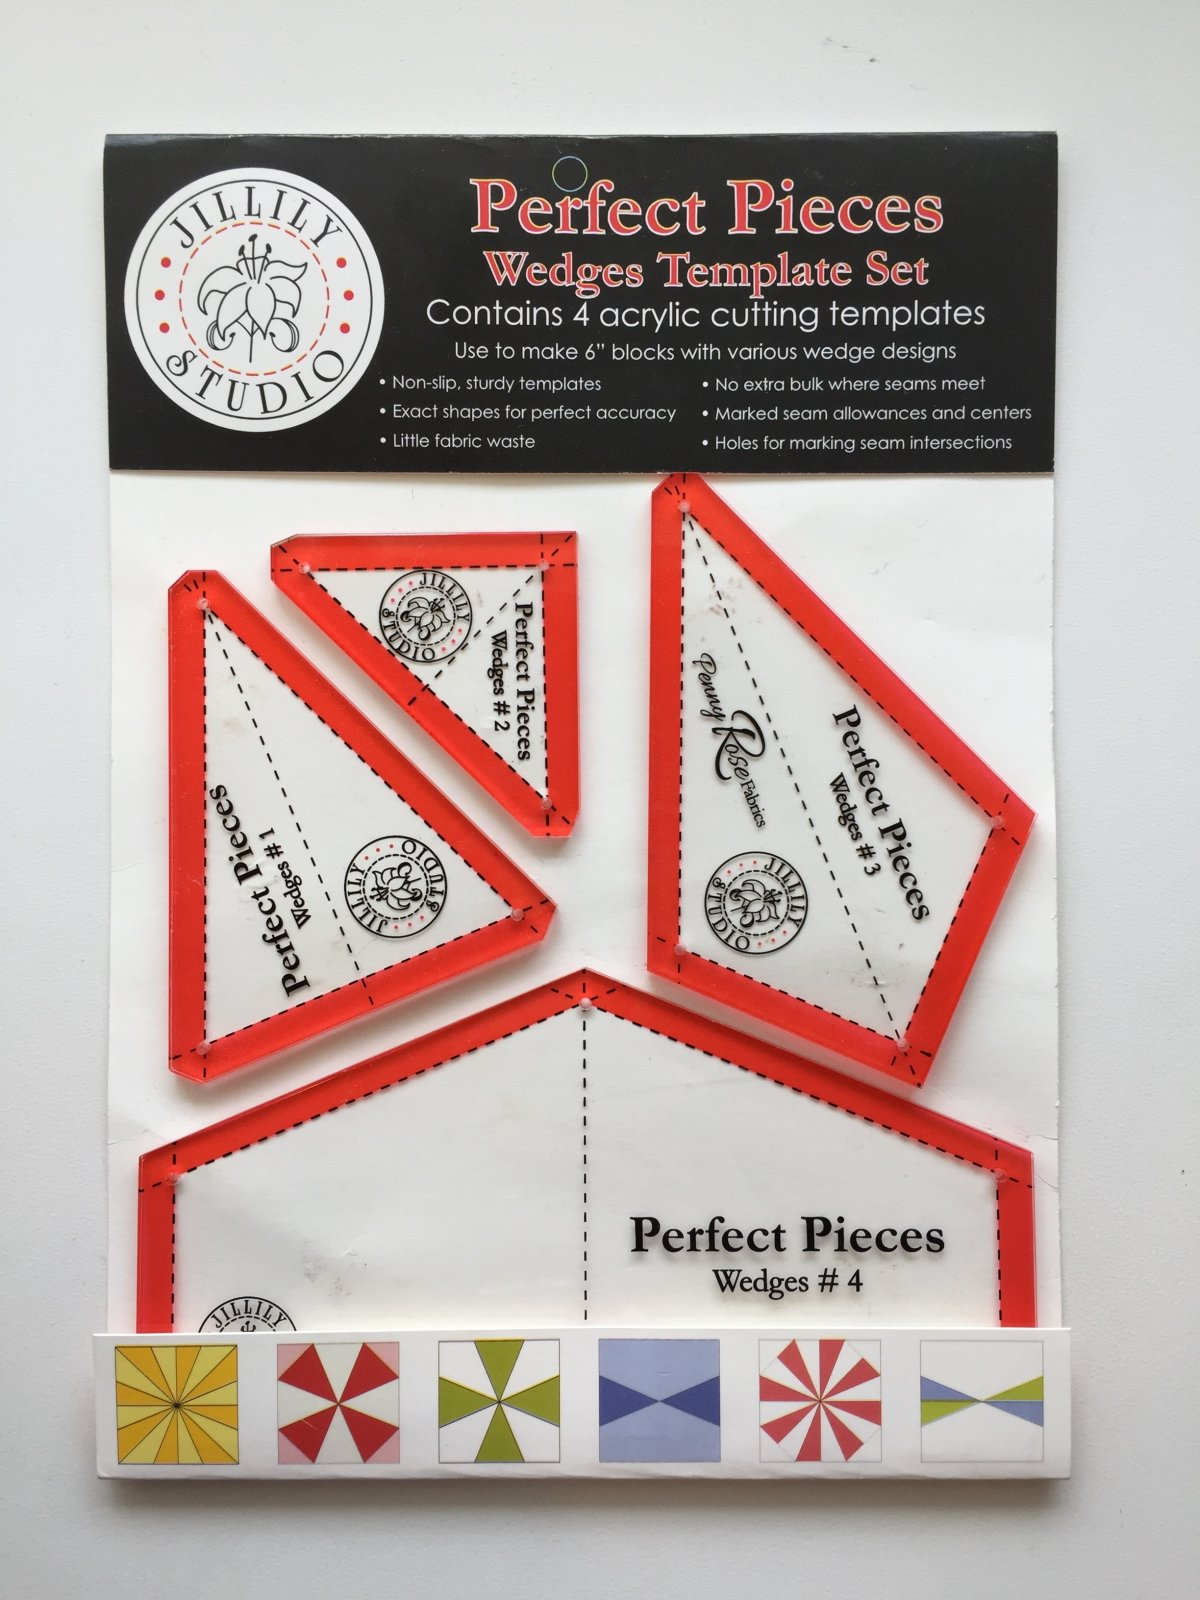 Perfect Pieces Wedges Template Set